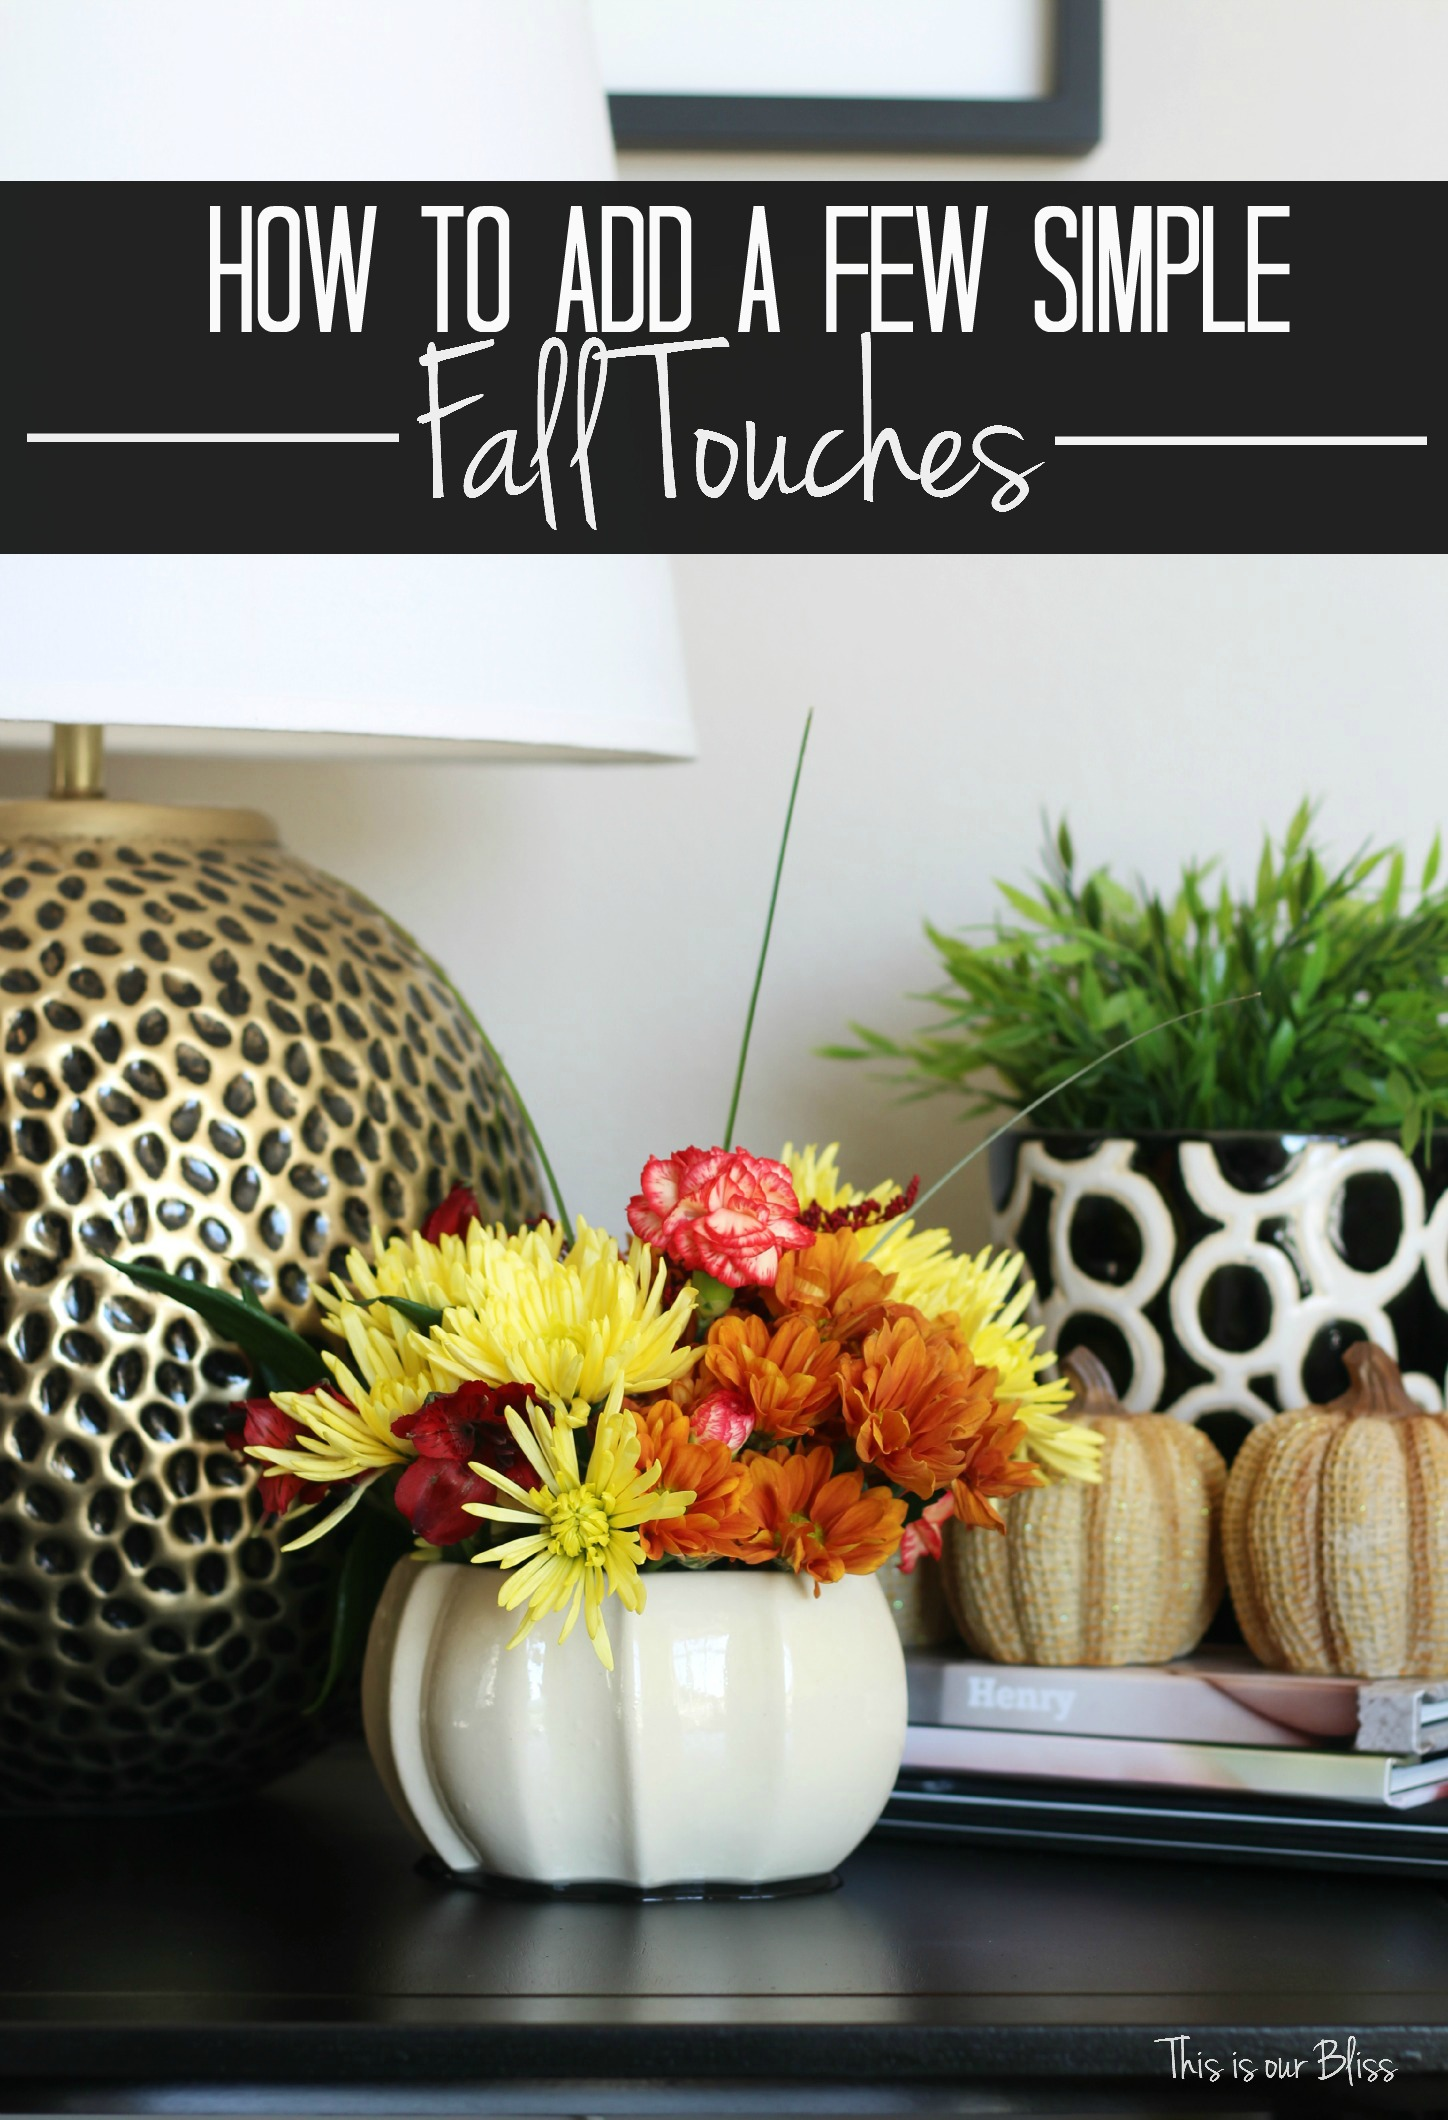 Simply Home Decorating: How To Add A Few Simple Fall Touches To Your Home